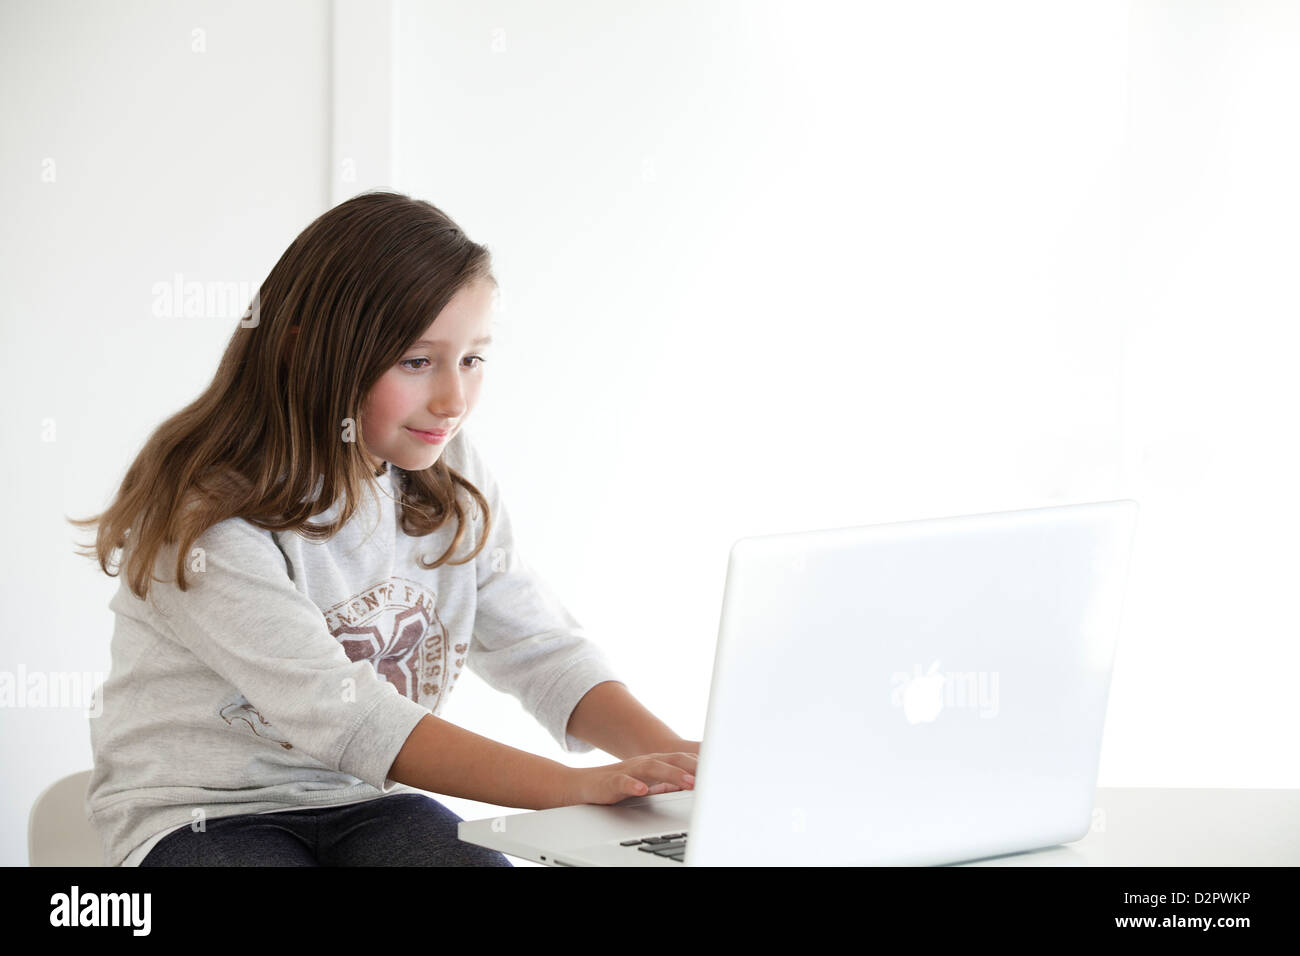 Young girl working on laptop - Stock Image